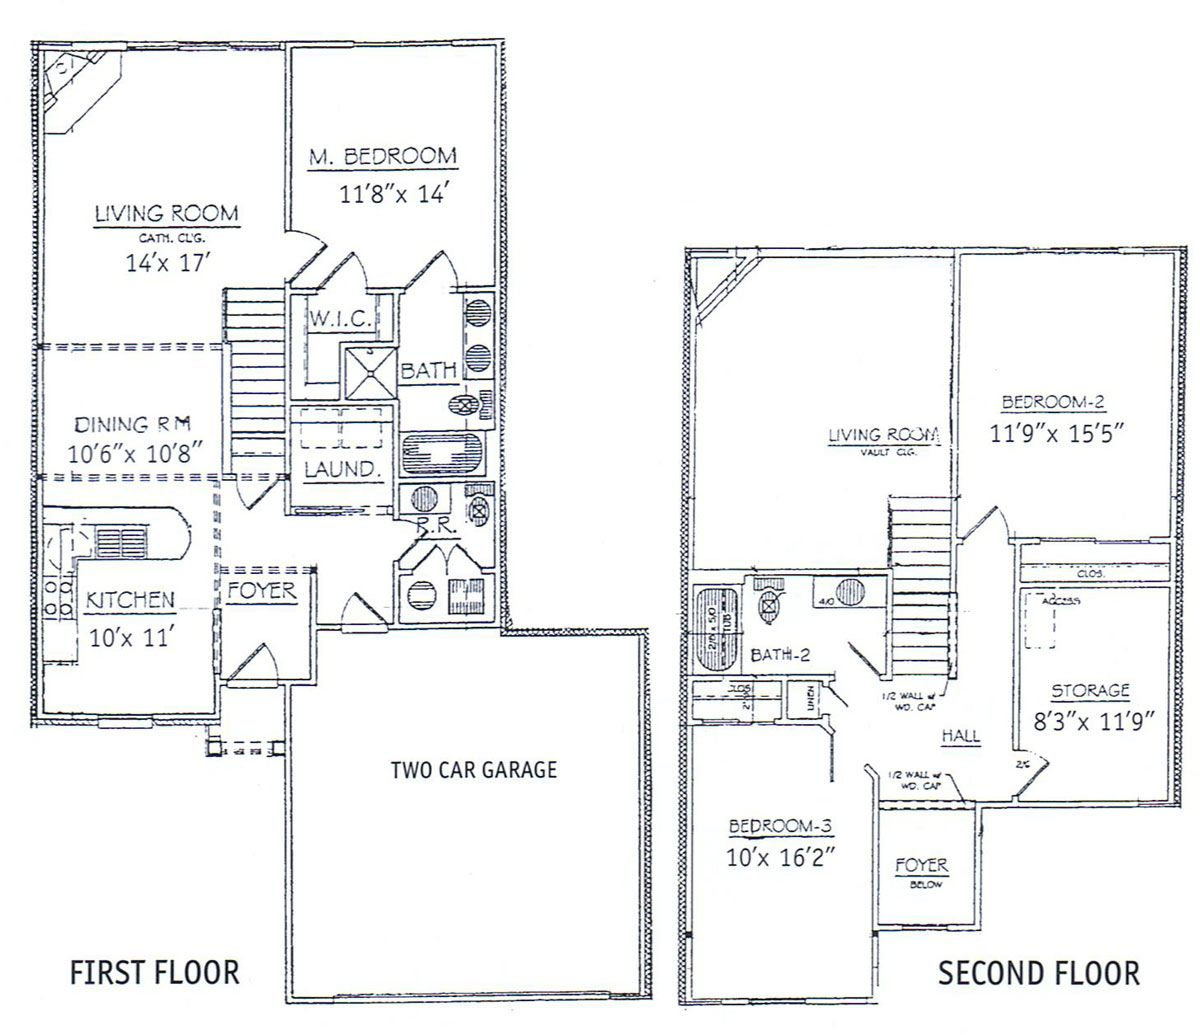 3 bedrooms floor plans 2 story bdrm basement the two 2 storey house plans